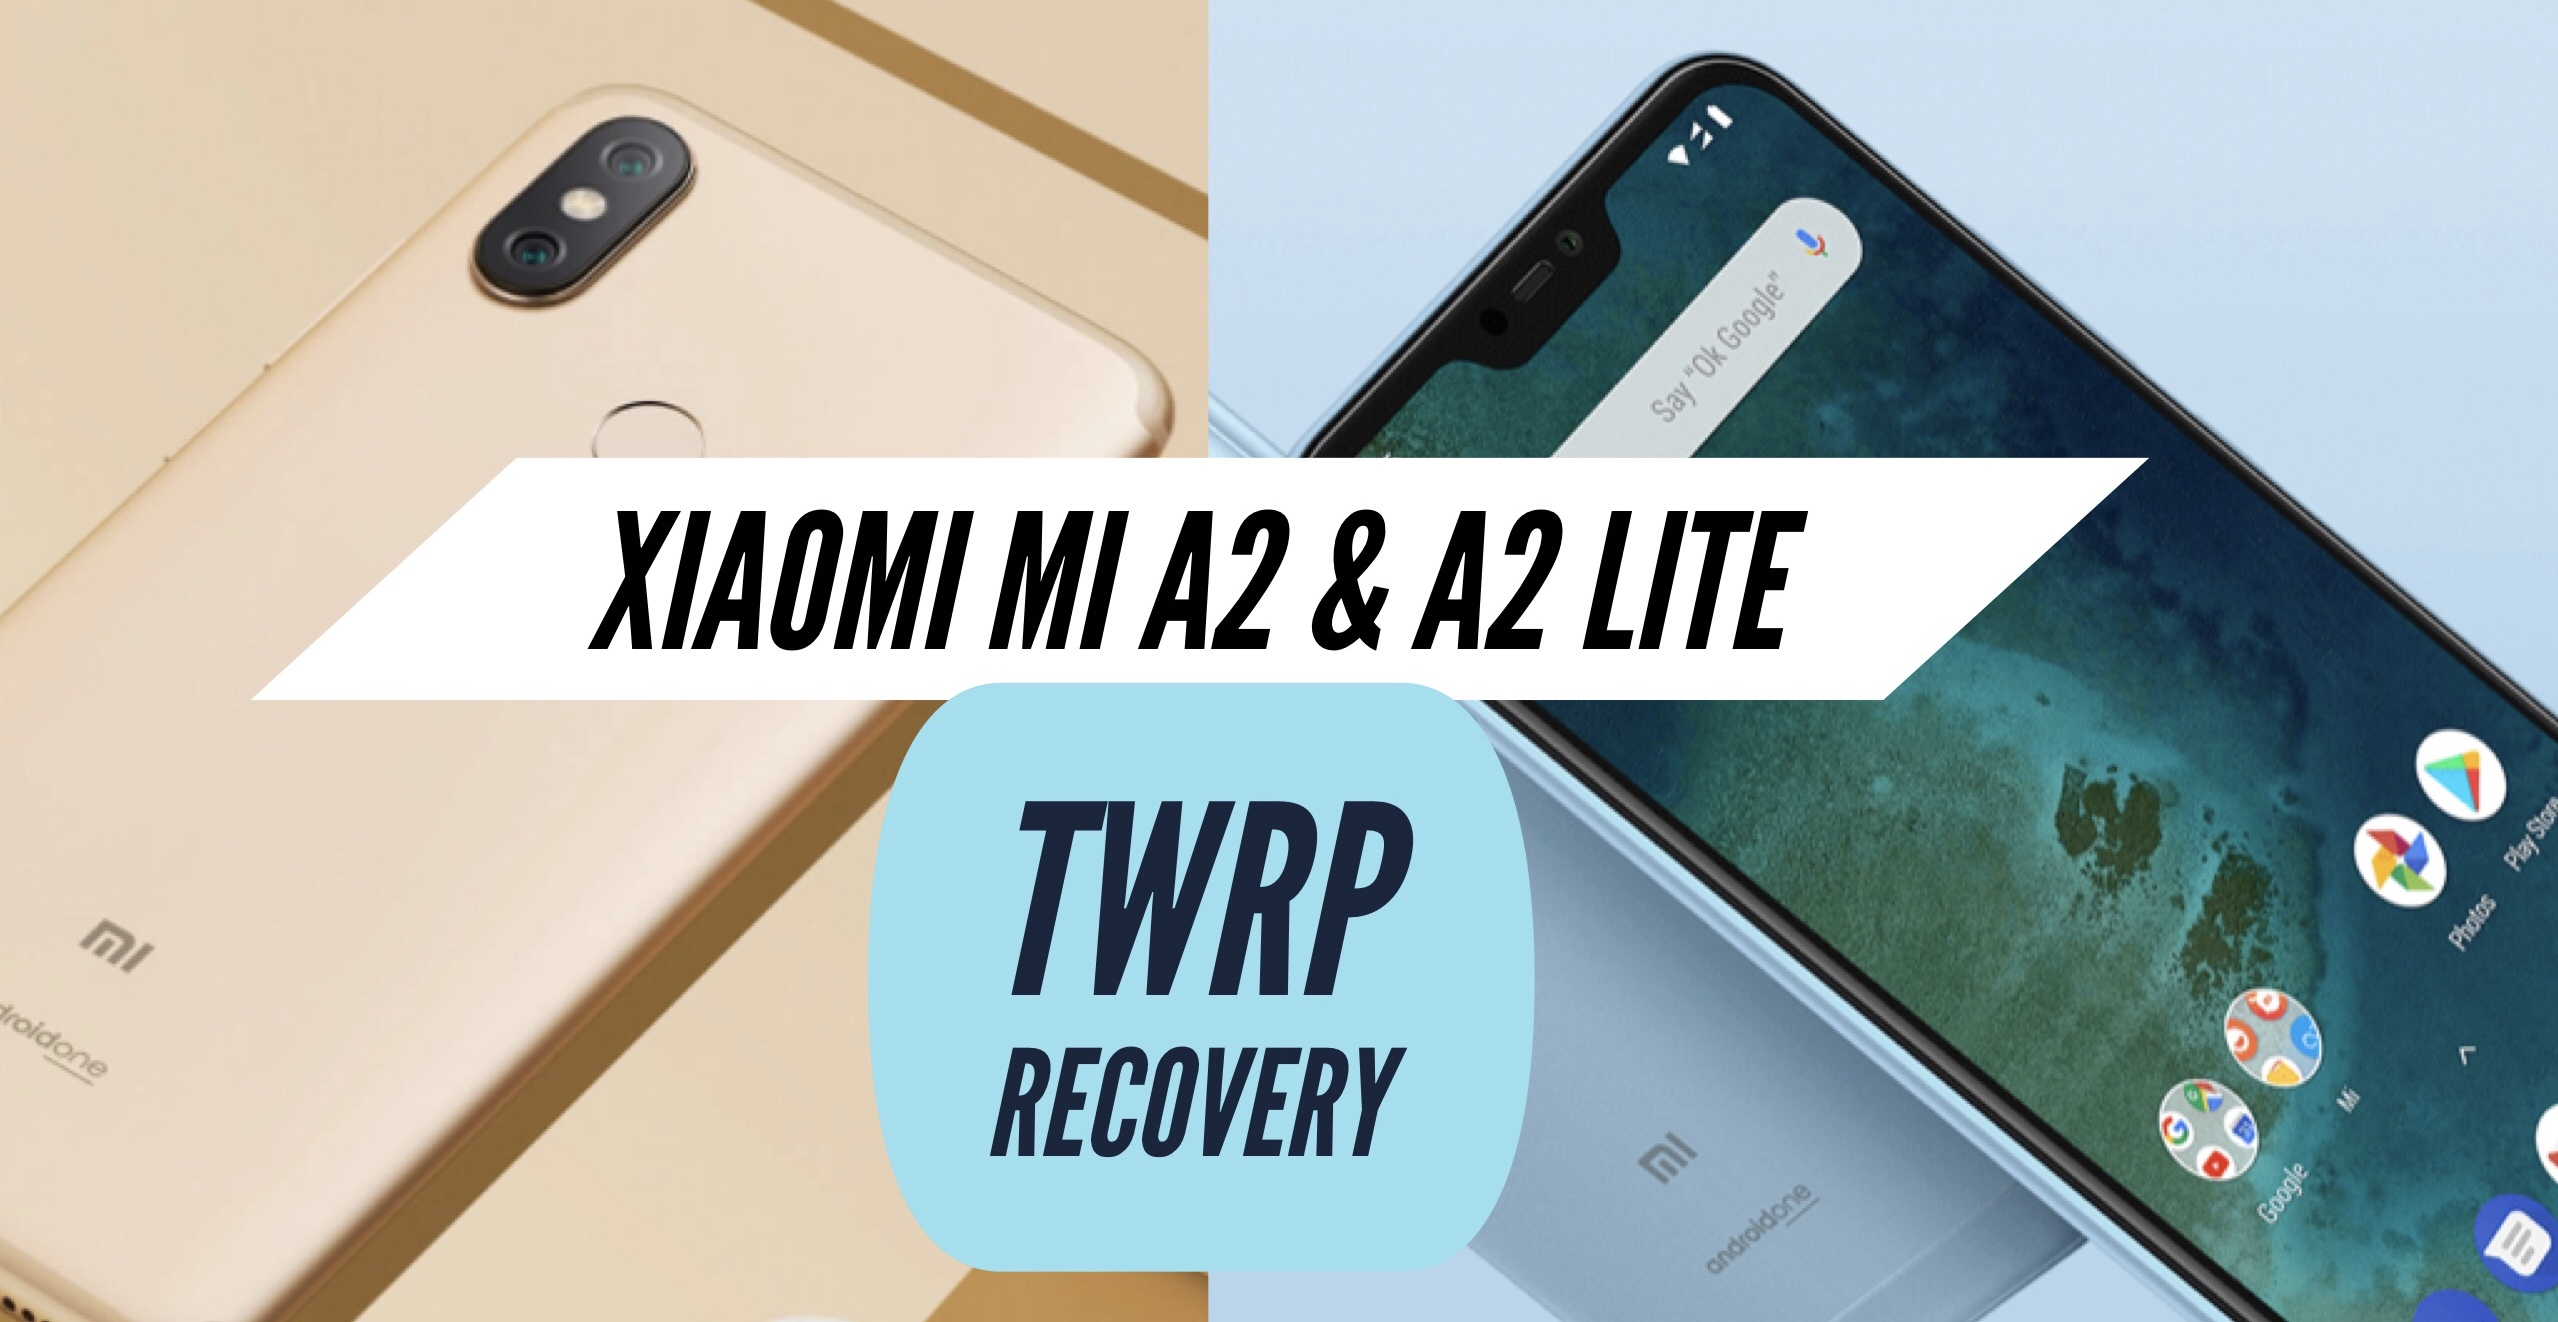 Download & Install TWRP Recovery on Xiaomi Mi A2 & A2 Lite!